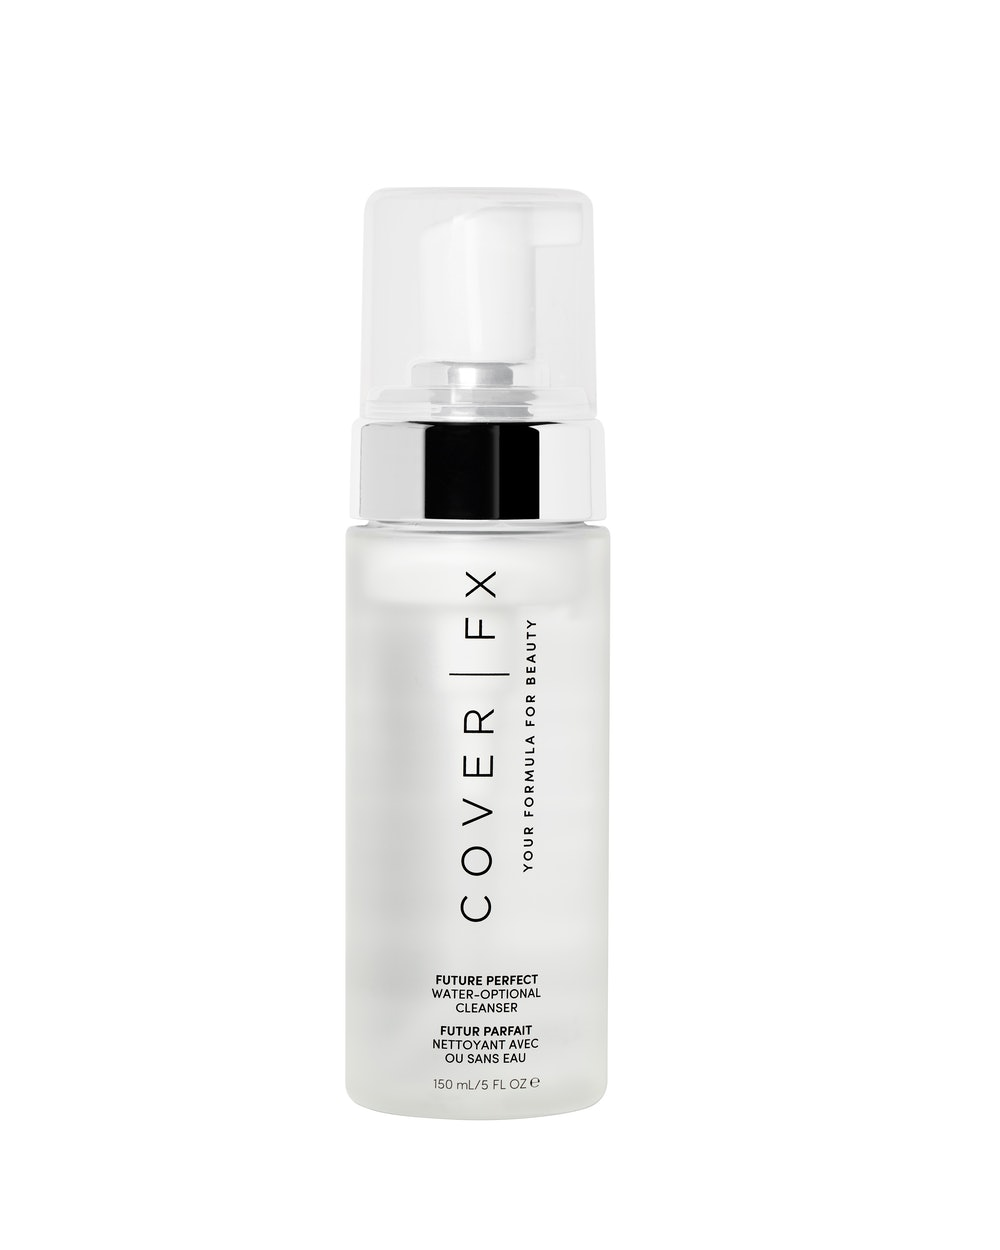 Future Perfect Water-Optional Cleanser